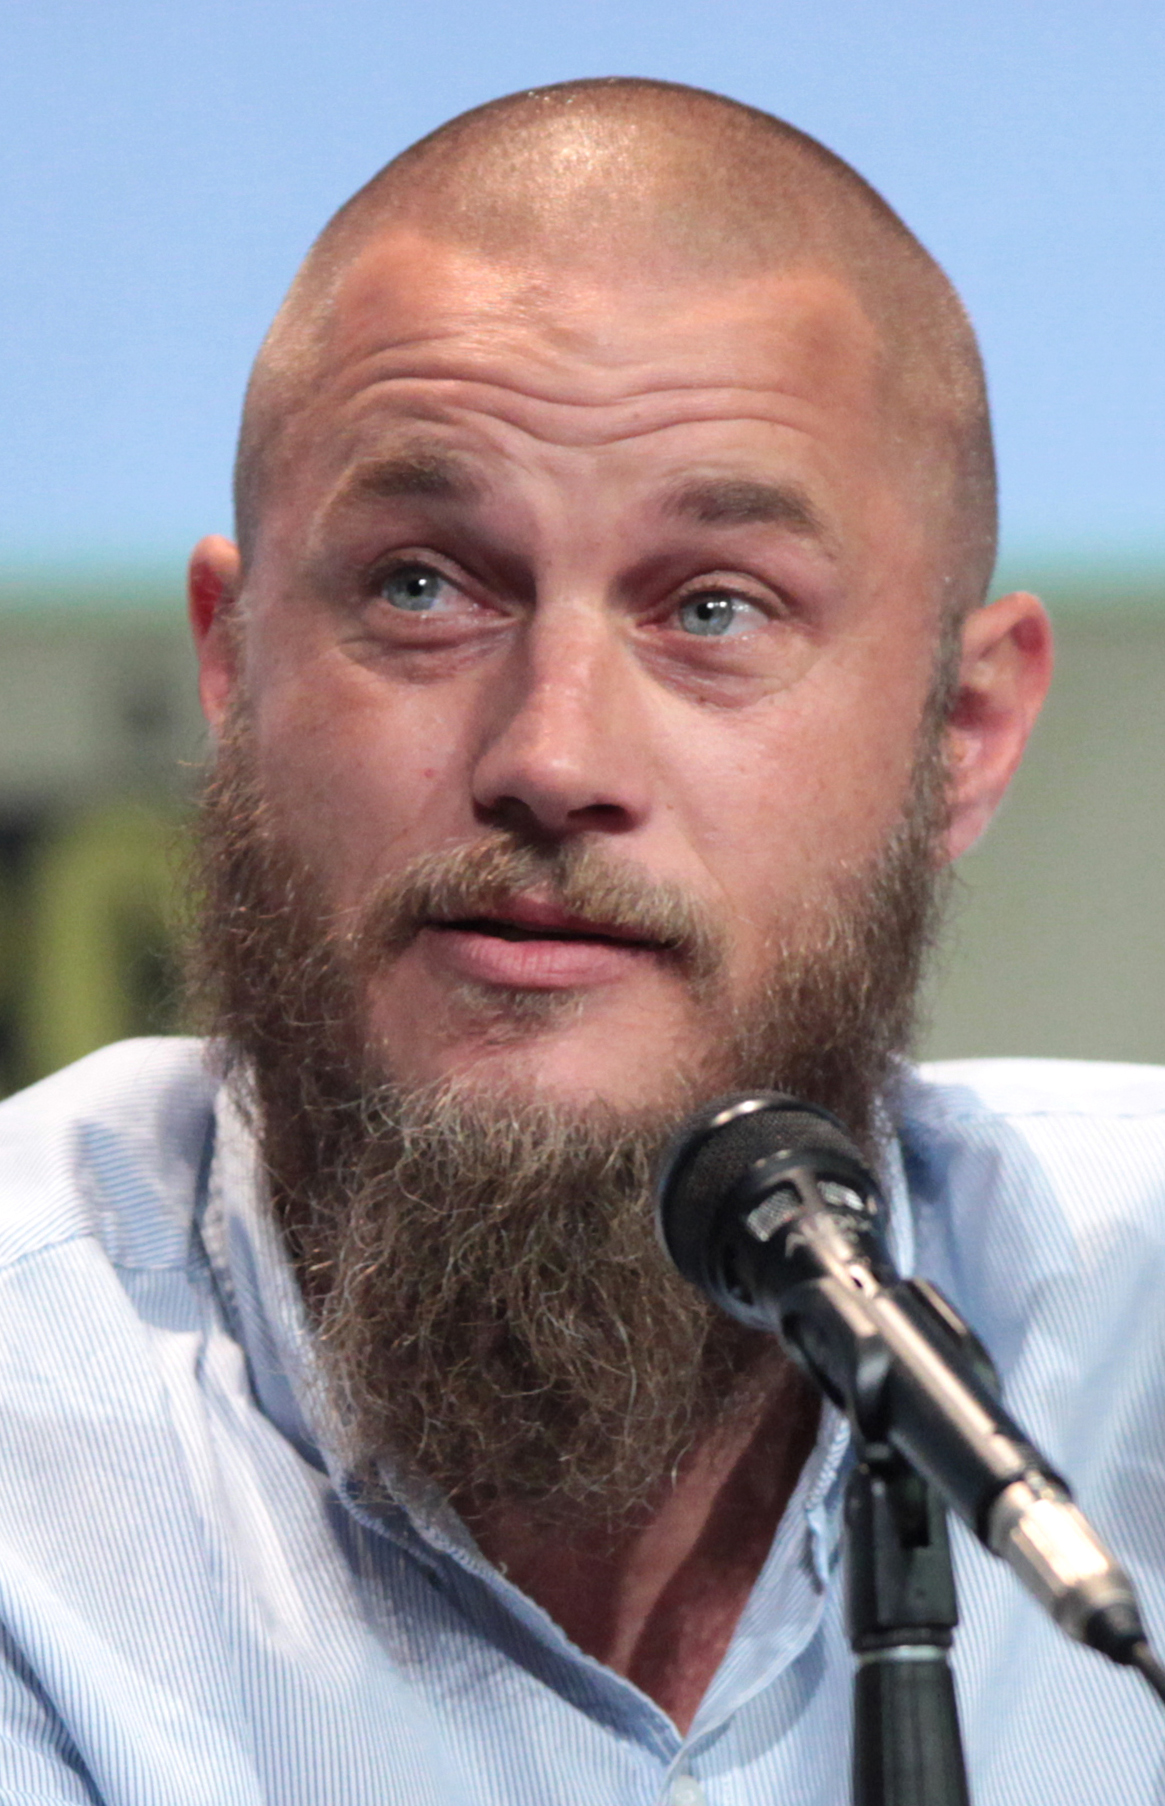 The 39-year old son of father Chris Fimmel and mother Jennie Fimmel Travis Fimmel in 2018 photo. Travis Fimmel earned a  million dollar salary - leaving the net worth at 3 million in 2018